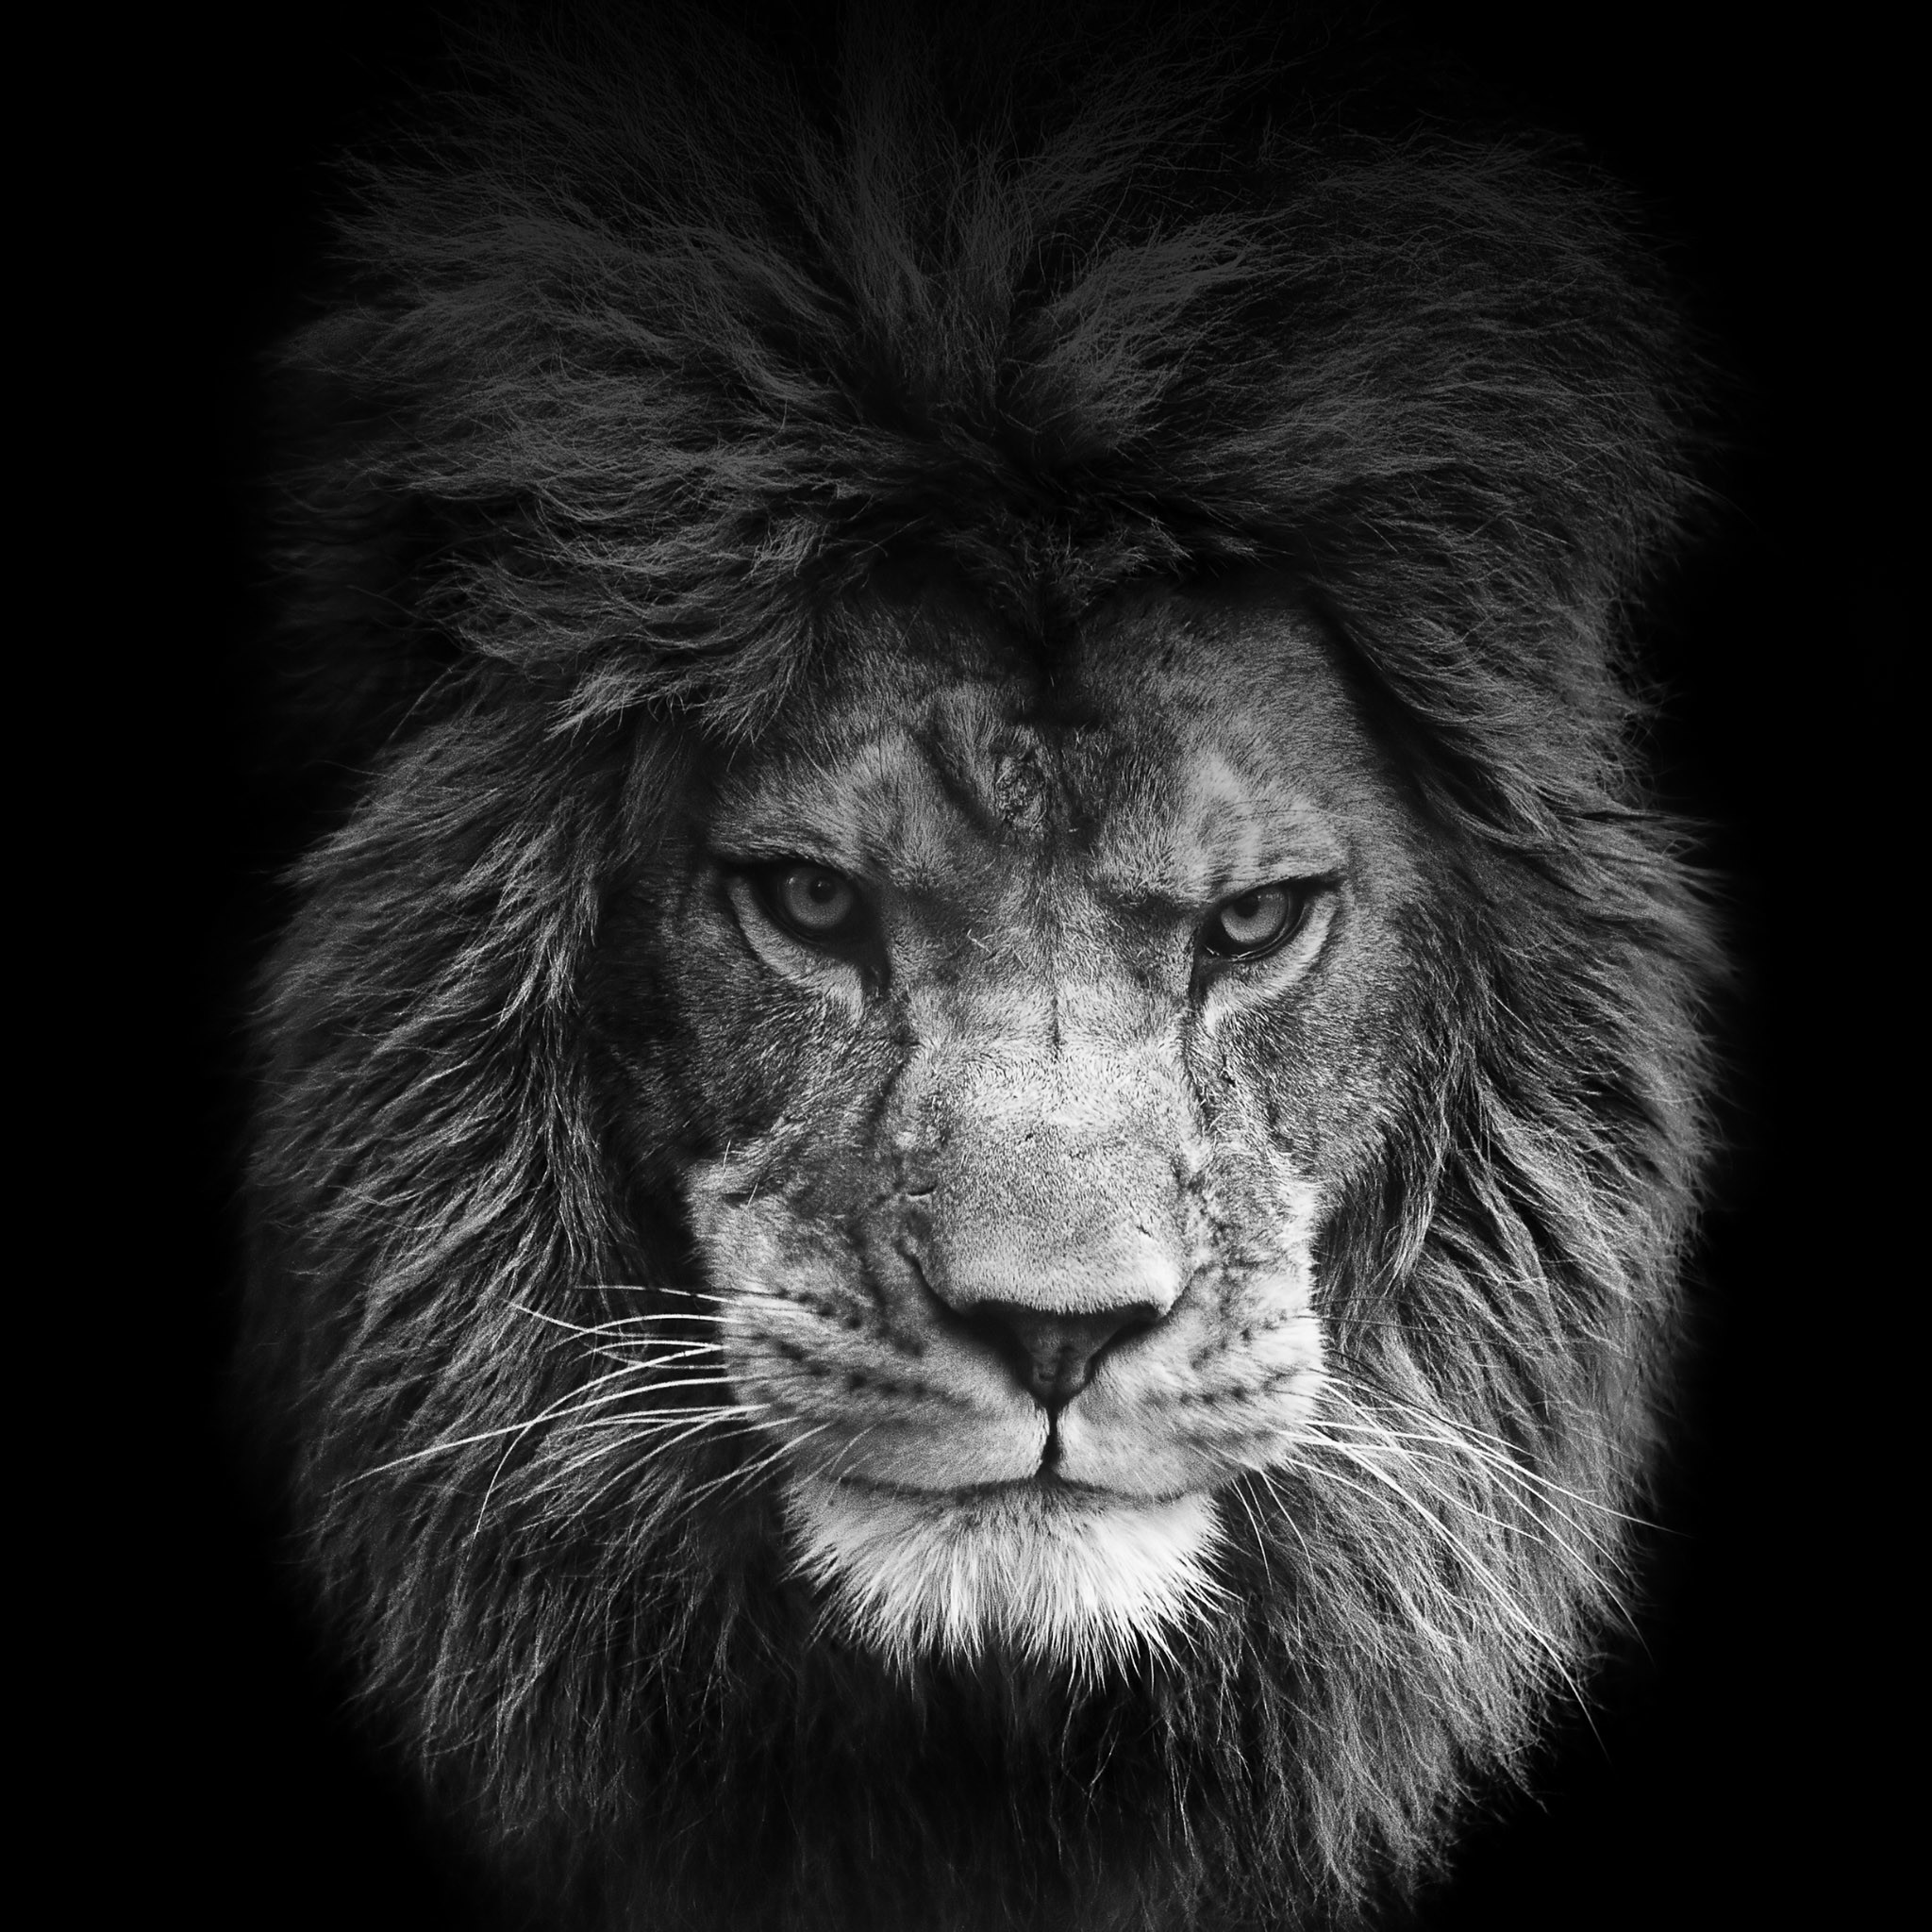 Lion iPhone Wallpaper (79+ images)